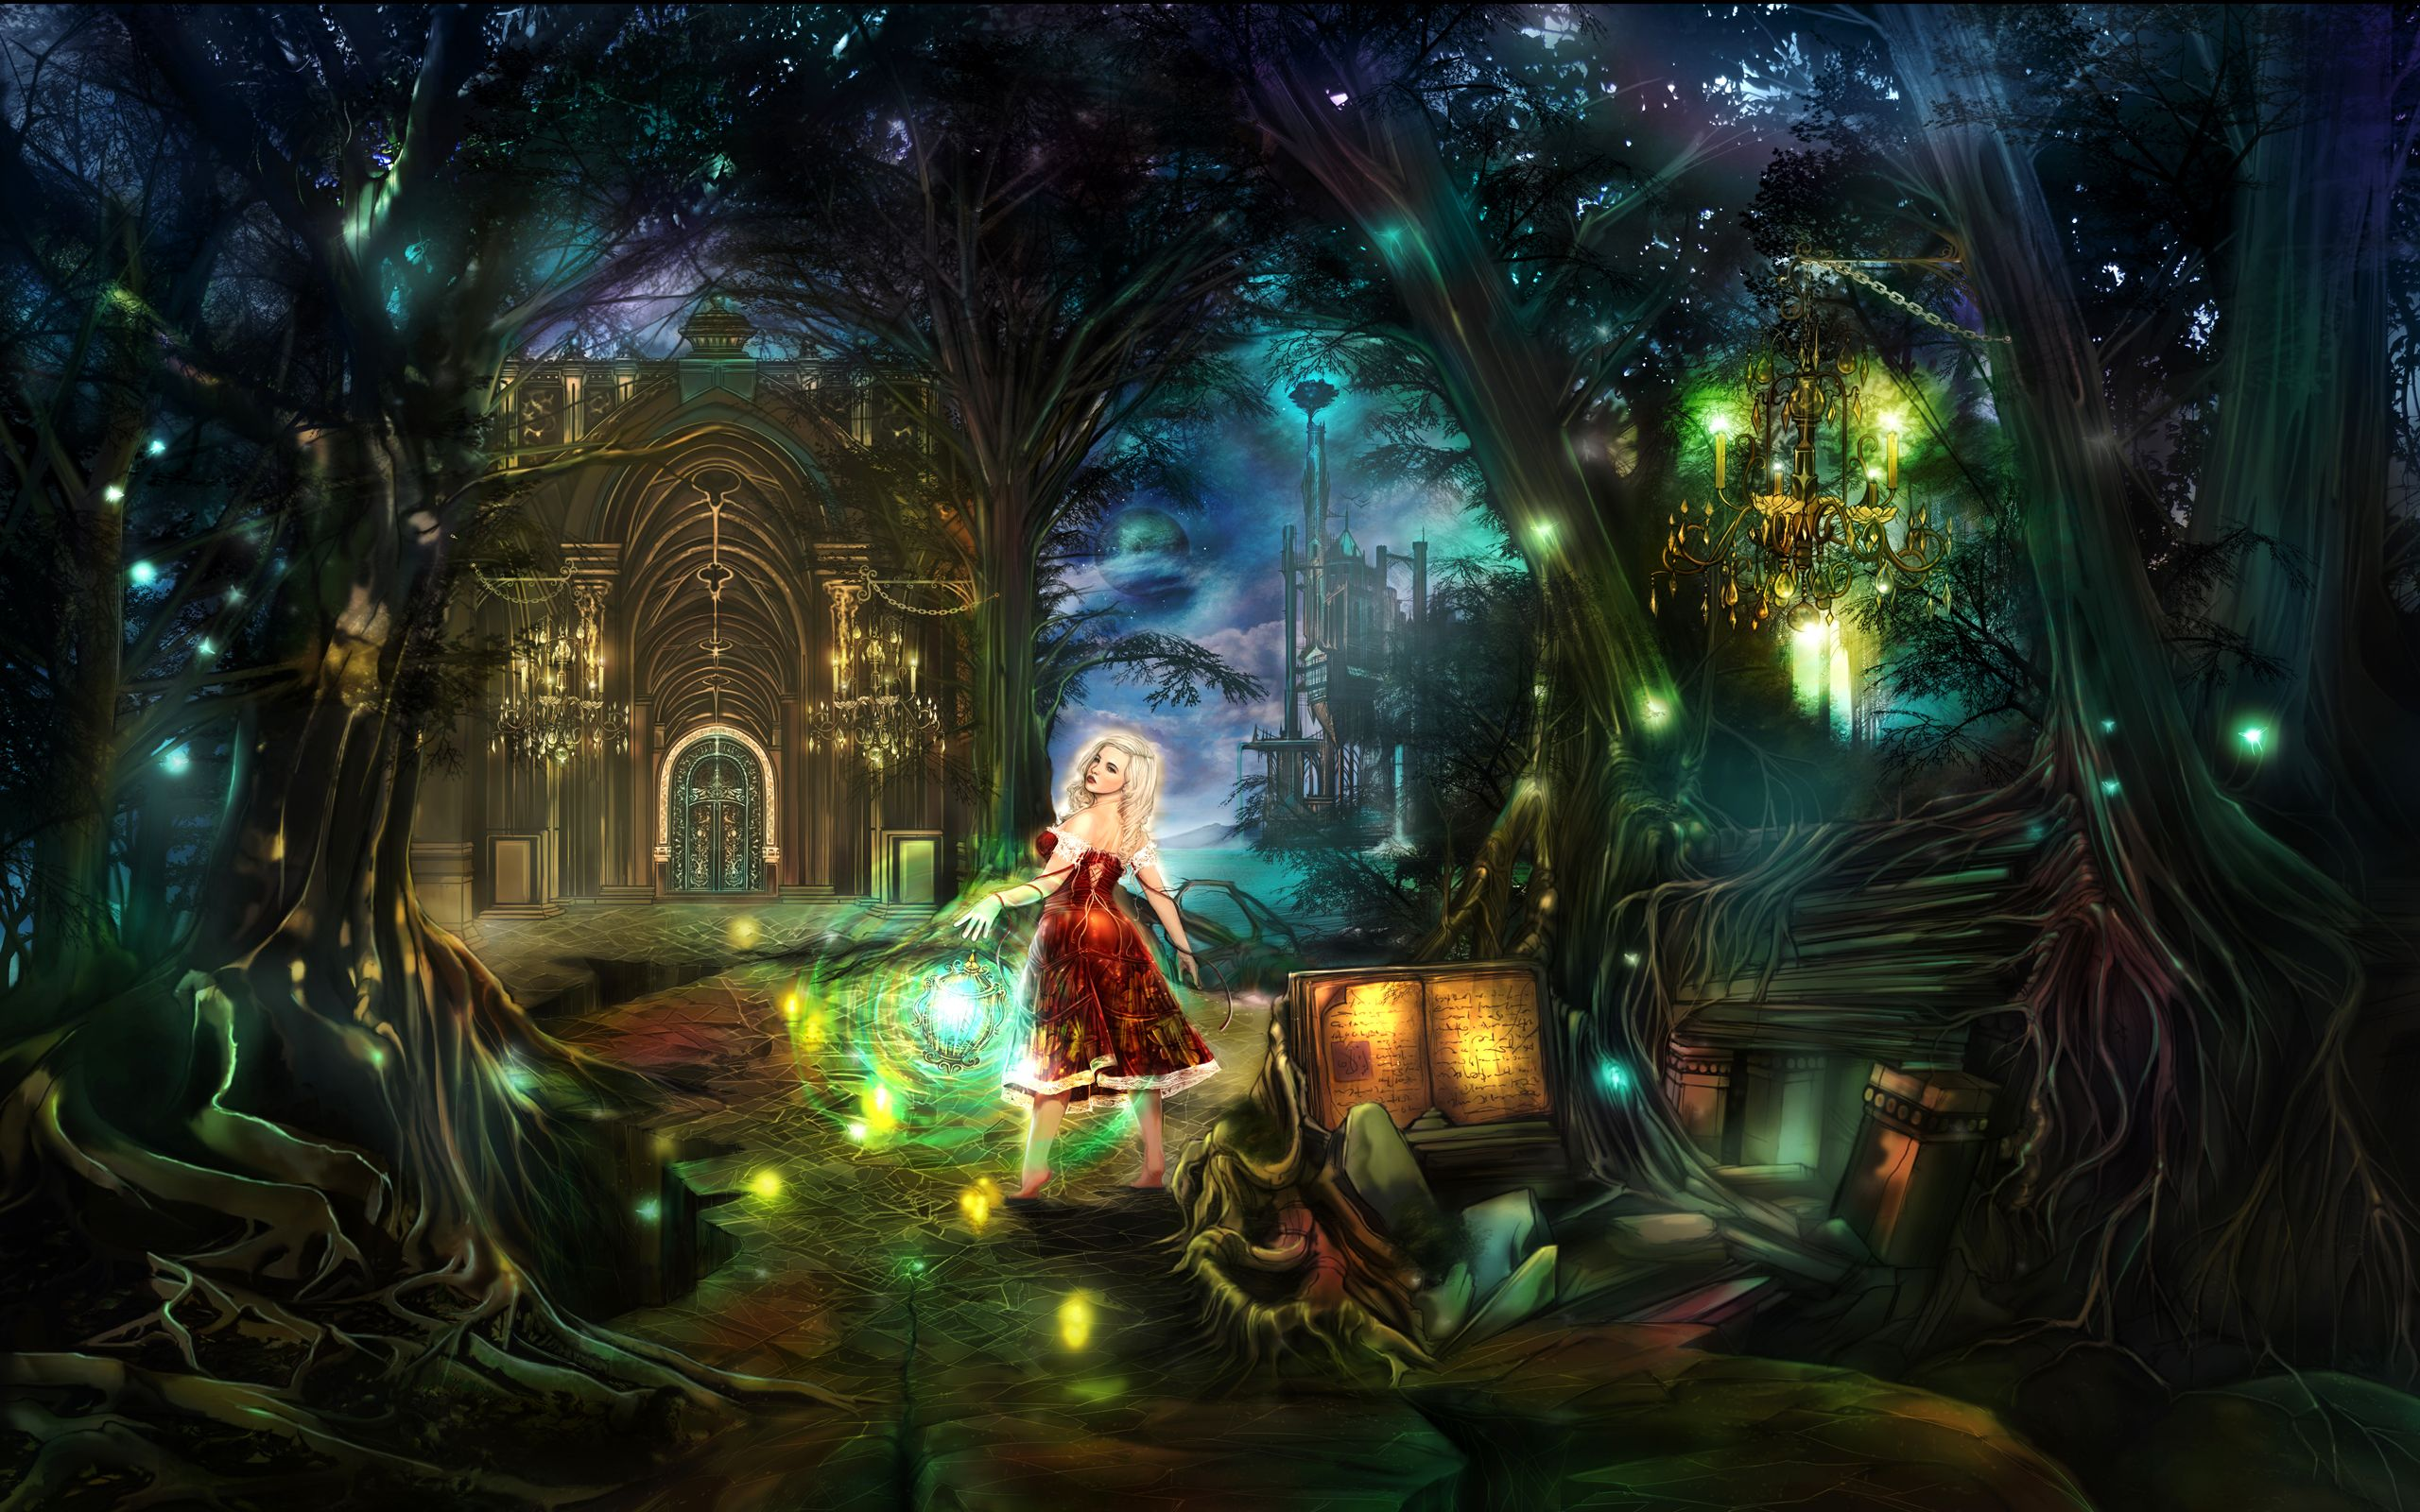 Fantasy dream wallpaper desktop wallpapers fantasy - Fantasy land wallpaper ...